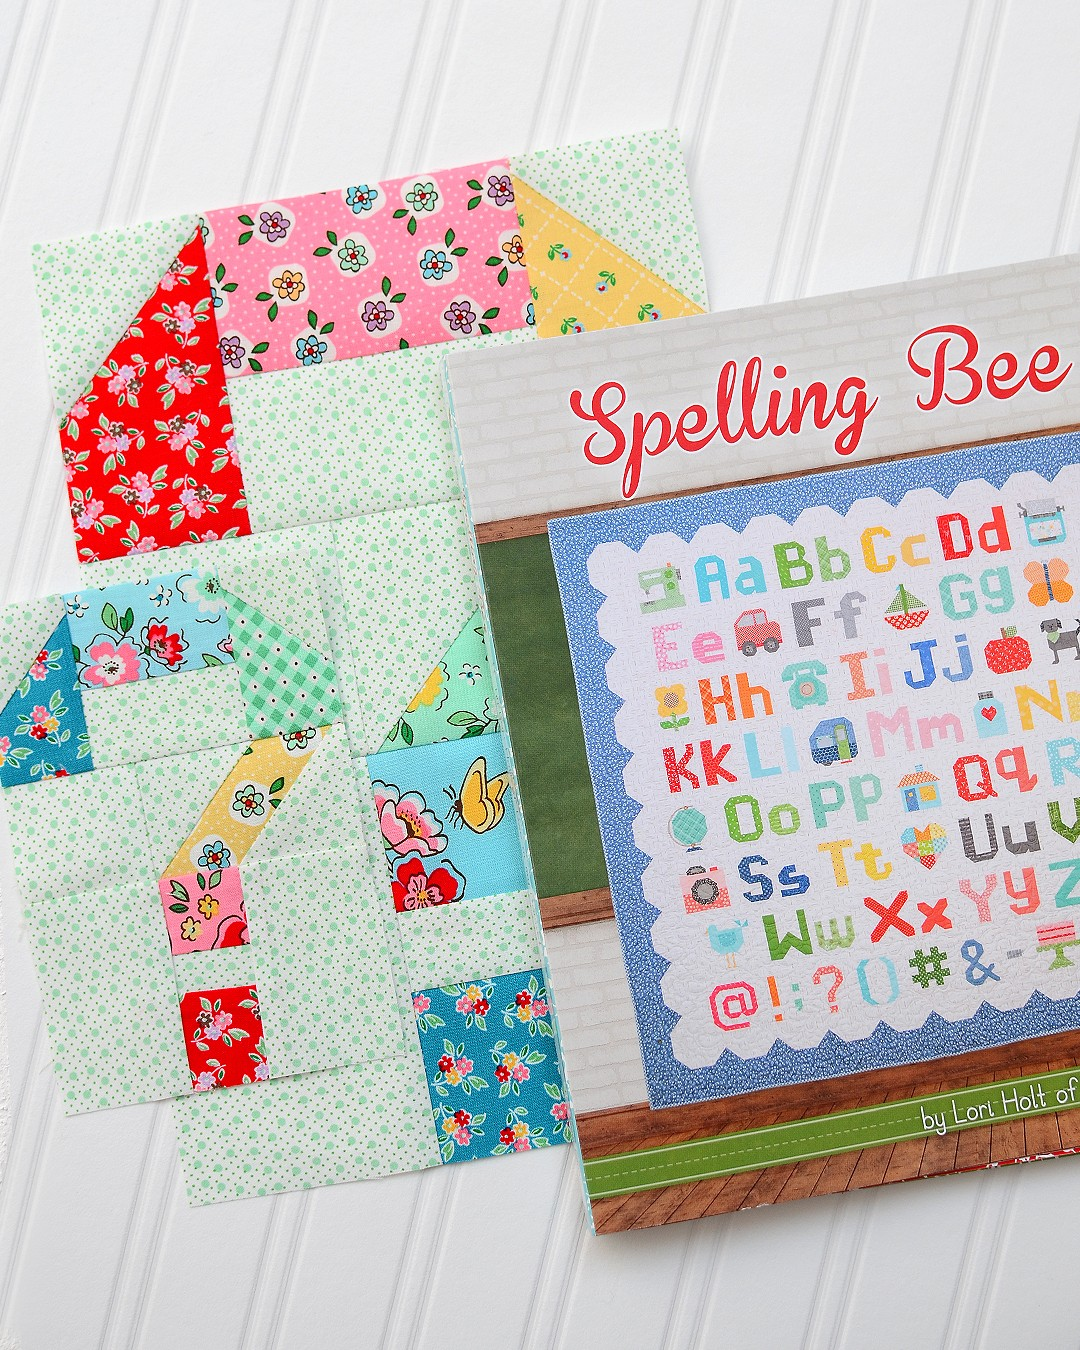 Spelling Bee Sew Along Question Mark Quilt Block by Nadra Ridgeway of ellis & higgs